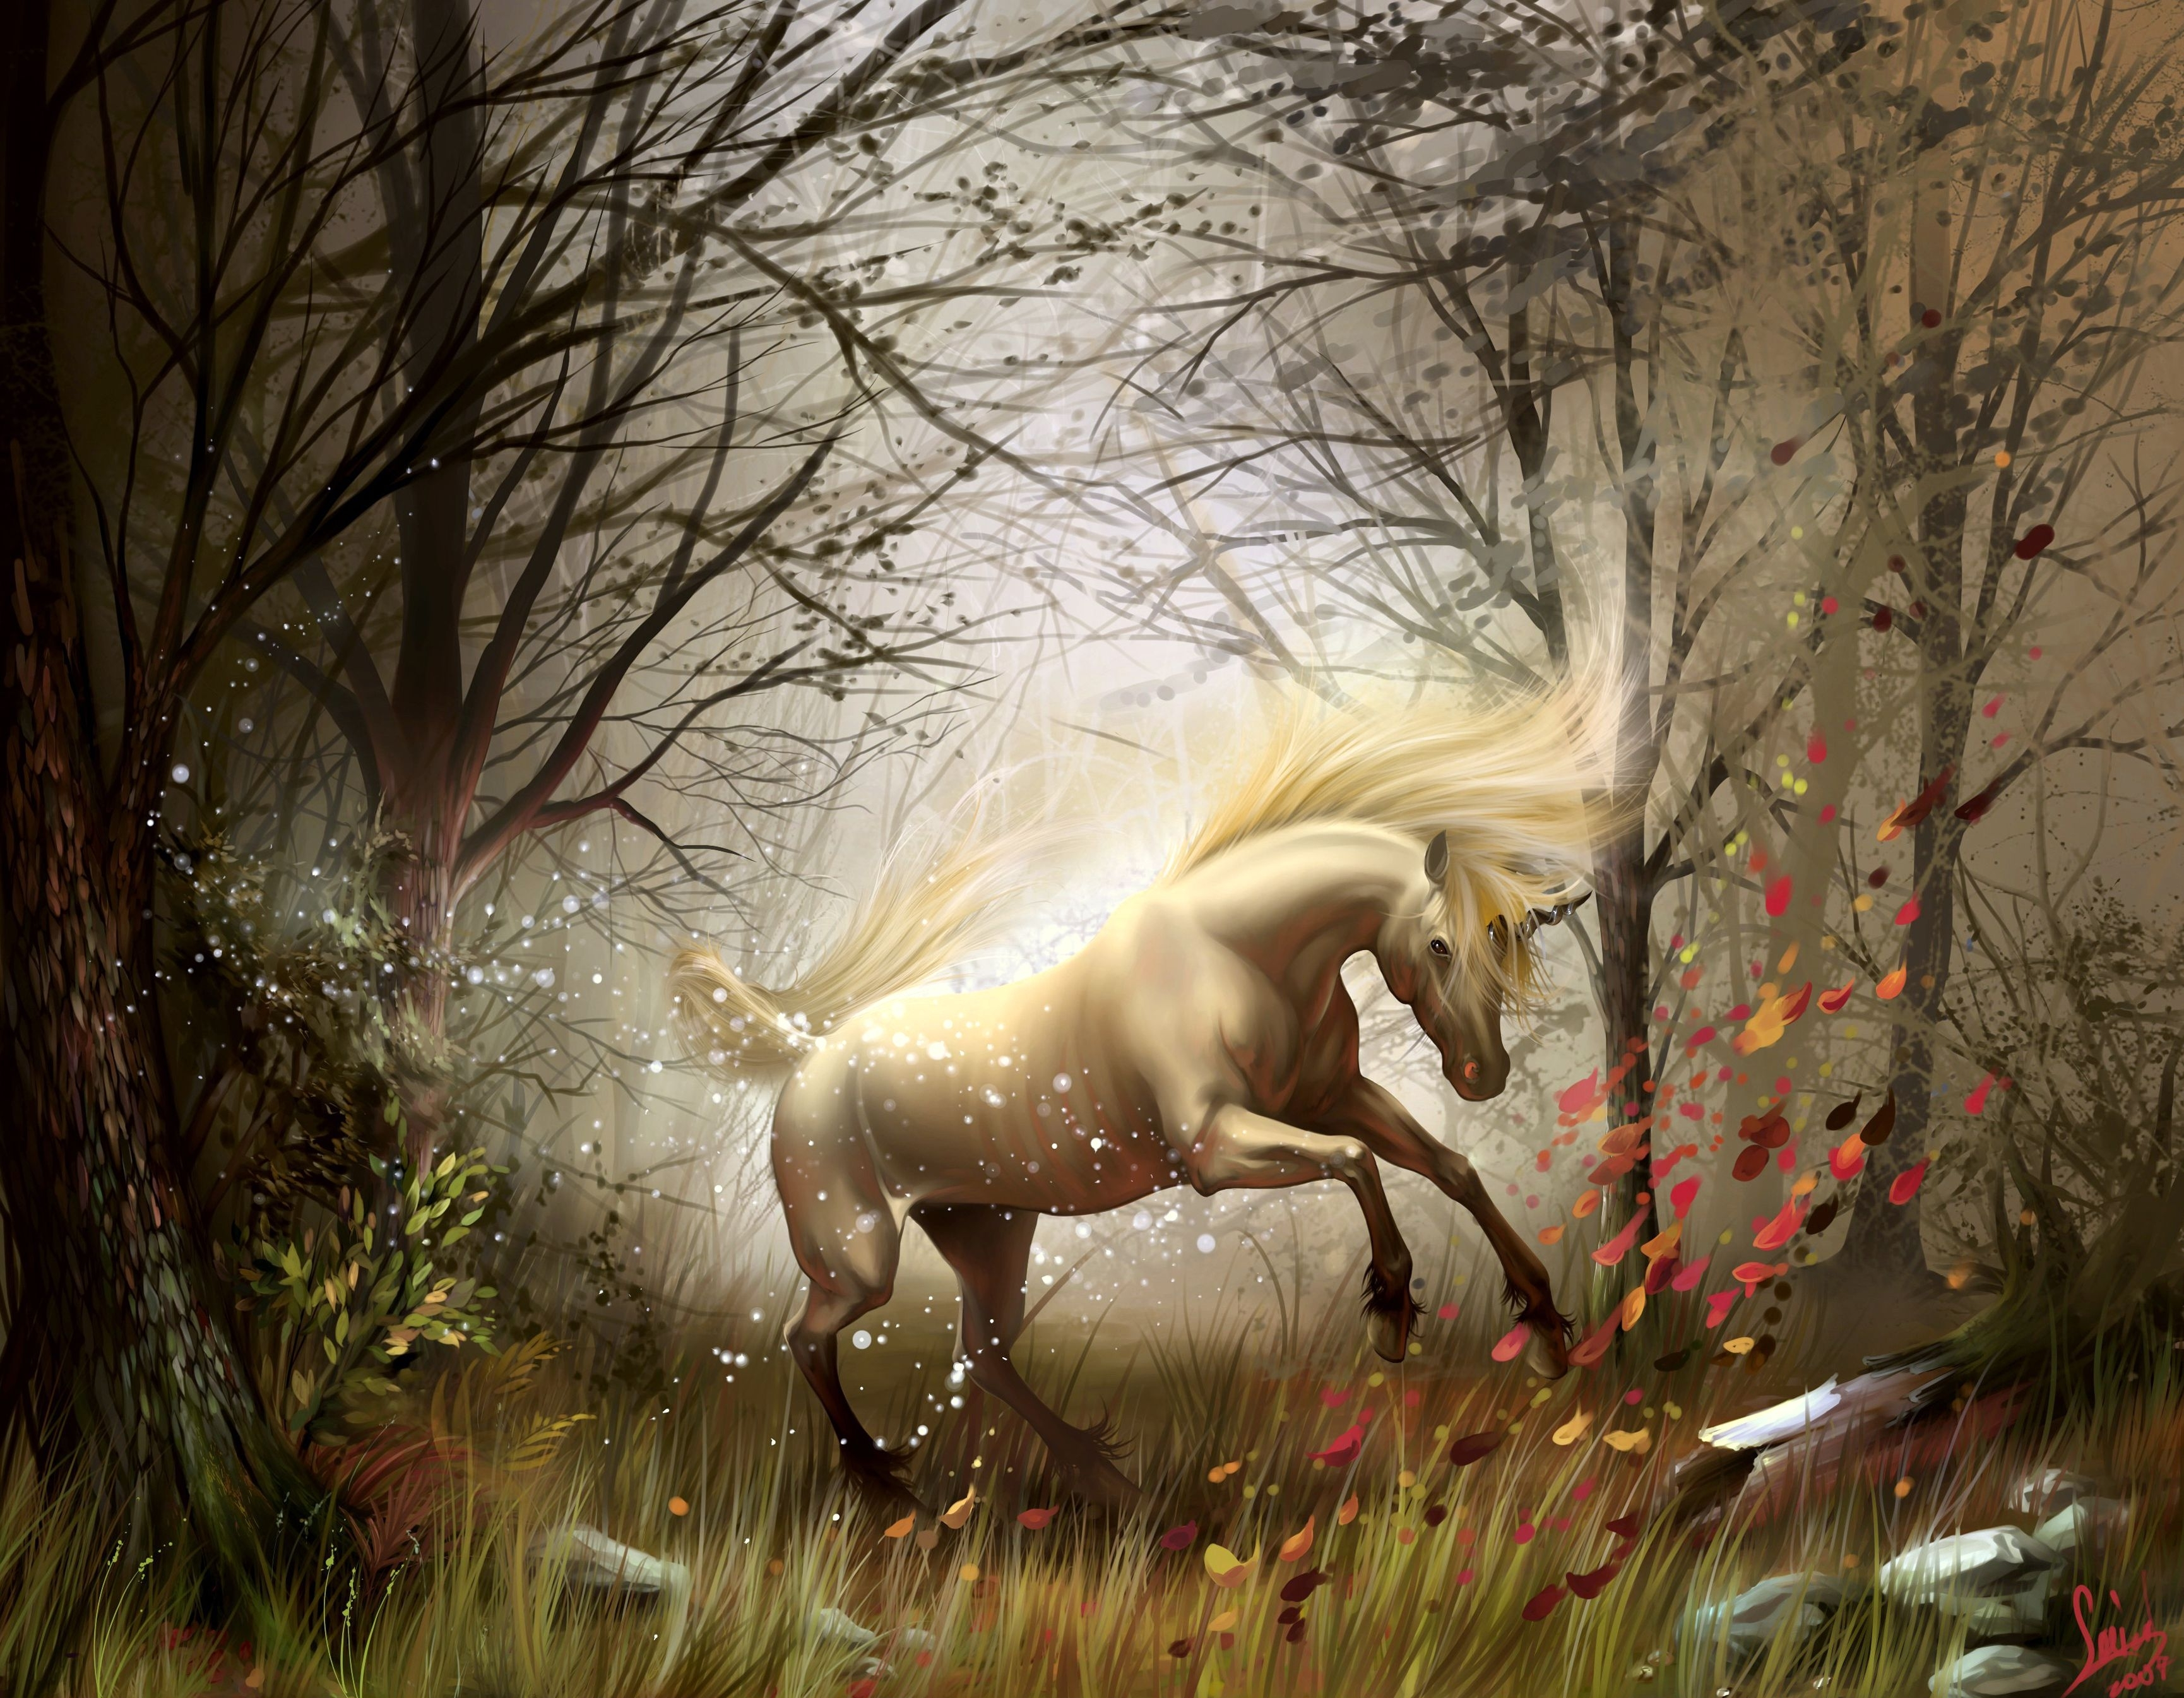 Hd wallpaper unicorn - Hd Wallpaper Background Id 224470 3460x2690 Fantasy Unicorn